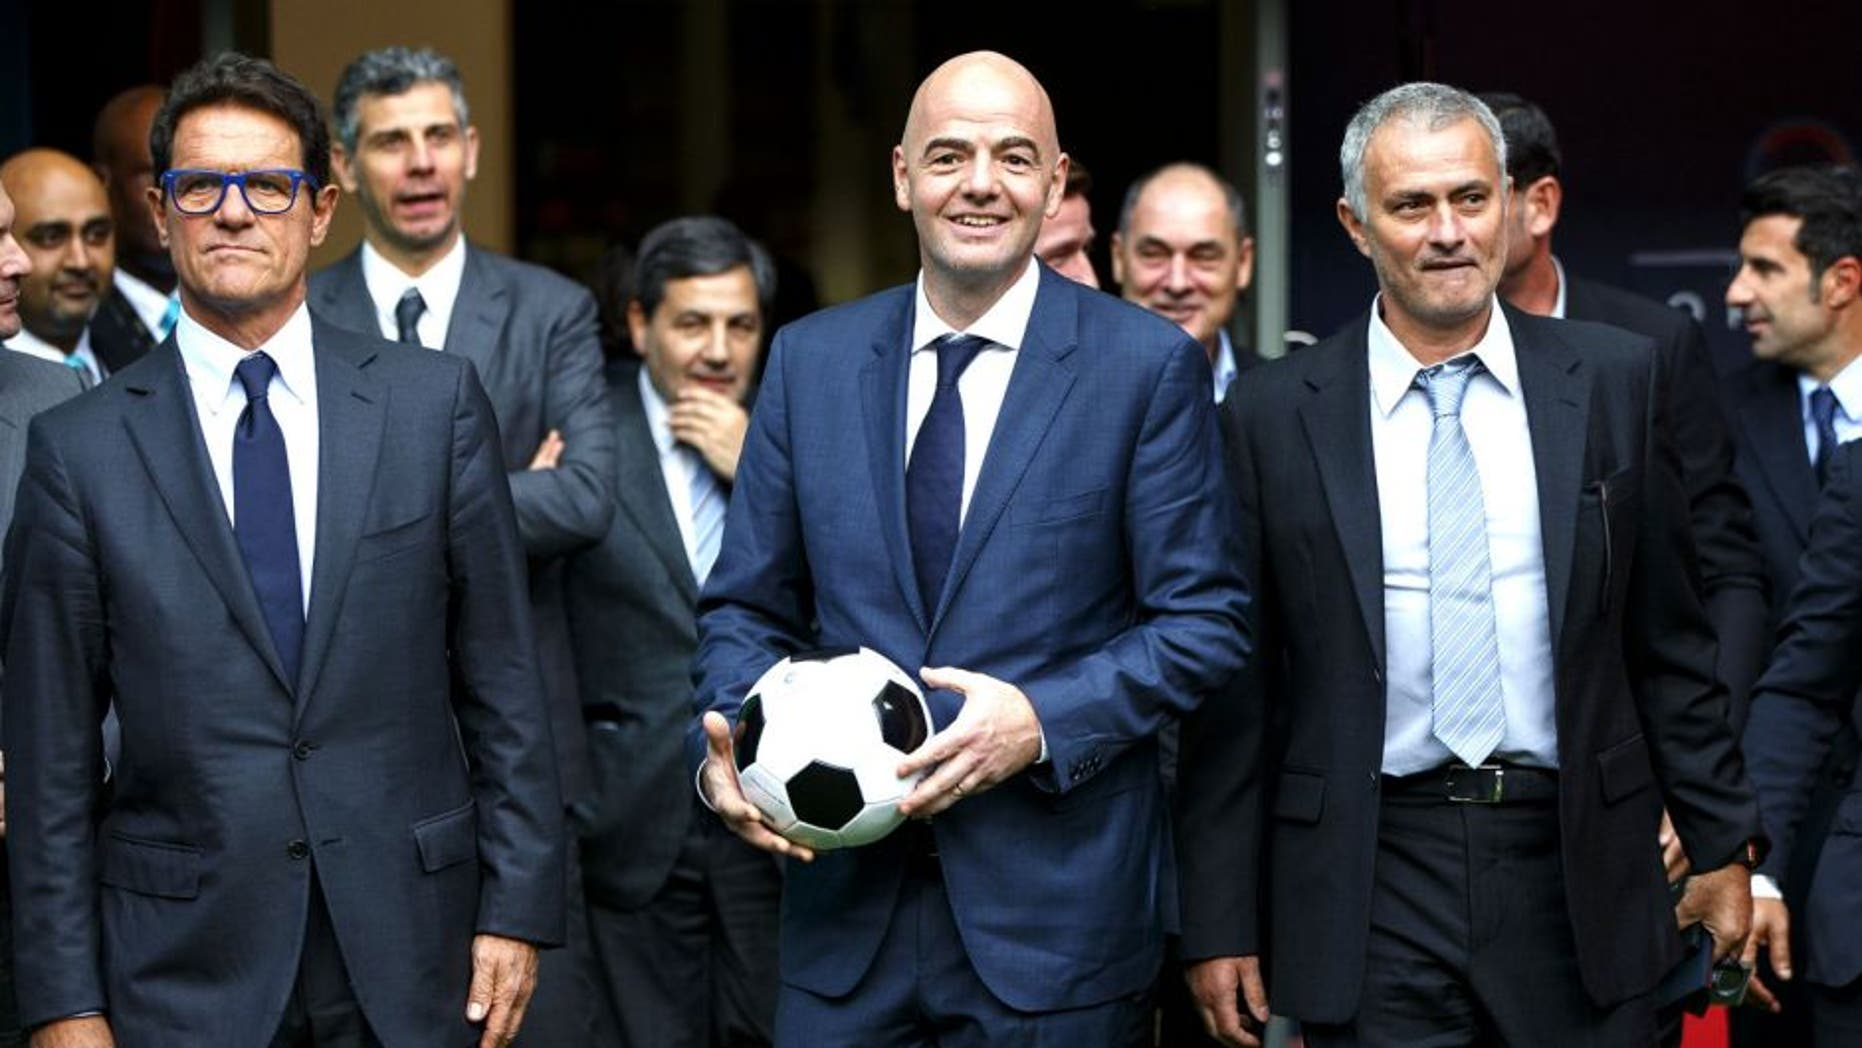 LONDON, UNITED KINGDOM - FEBRUARY 01: FIFA Presidential candidate Gianni Infantino (C) walks with Fabio Capello (L) and former Chelsea manager Jose Mourinho (R) after Gianni Infantino's press conference at Wembley Stadium on February 1, 2016 in London, United Kingdom. Gianni Infantino unveils his 90 day plan that he will implement if he is elected as FIFA President. (Photo by Tolga Akmen/Anadolu Agency/Getty Images)